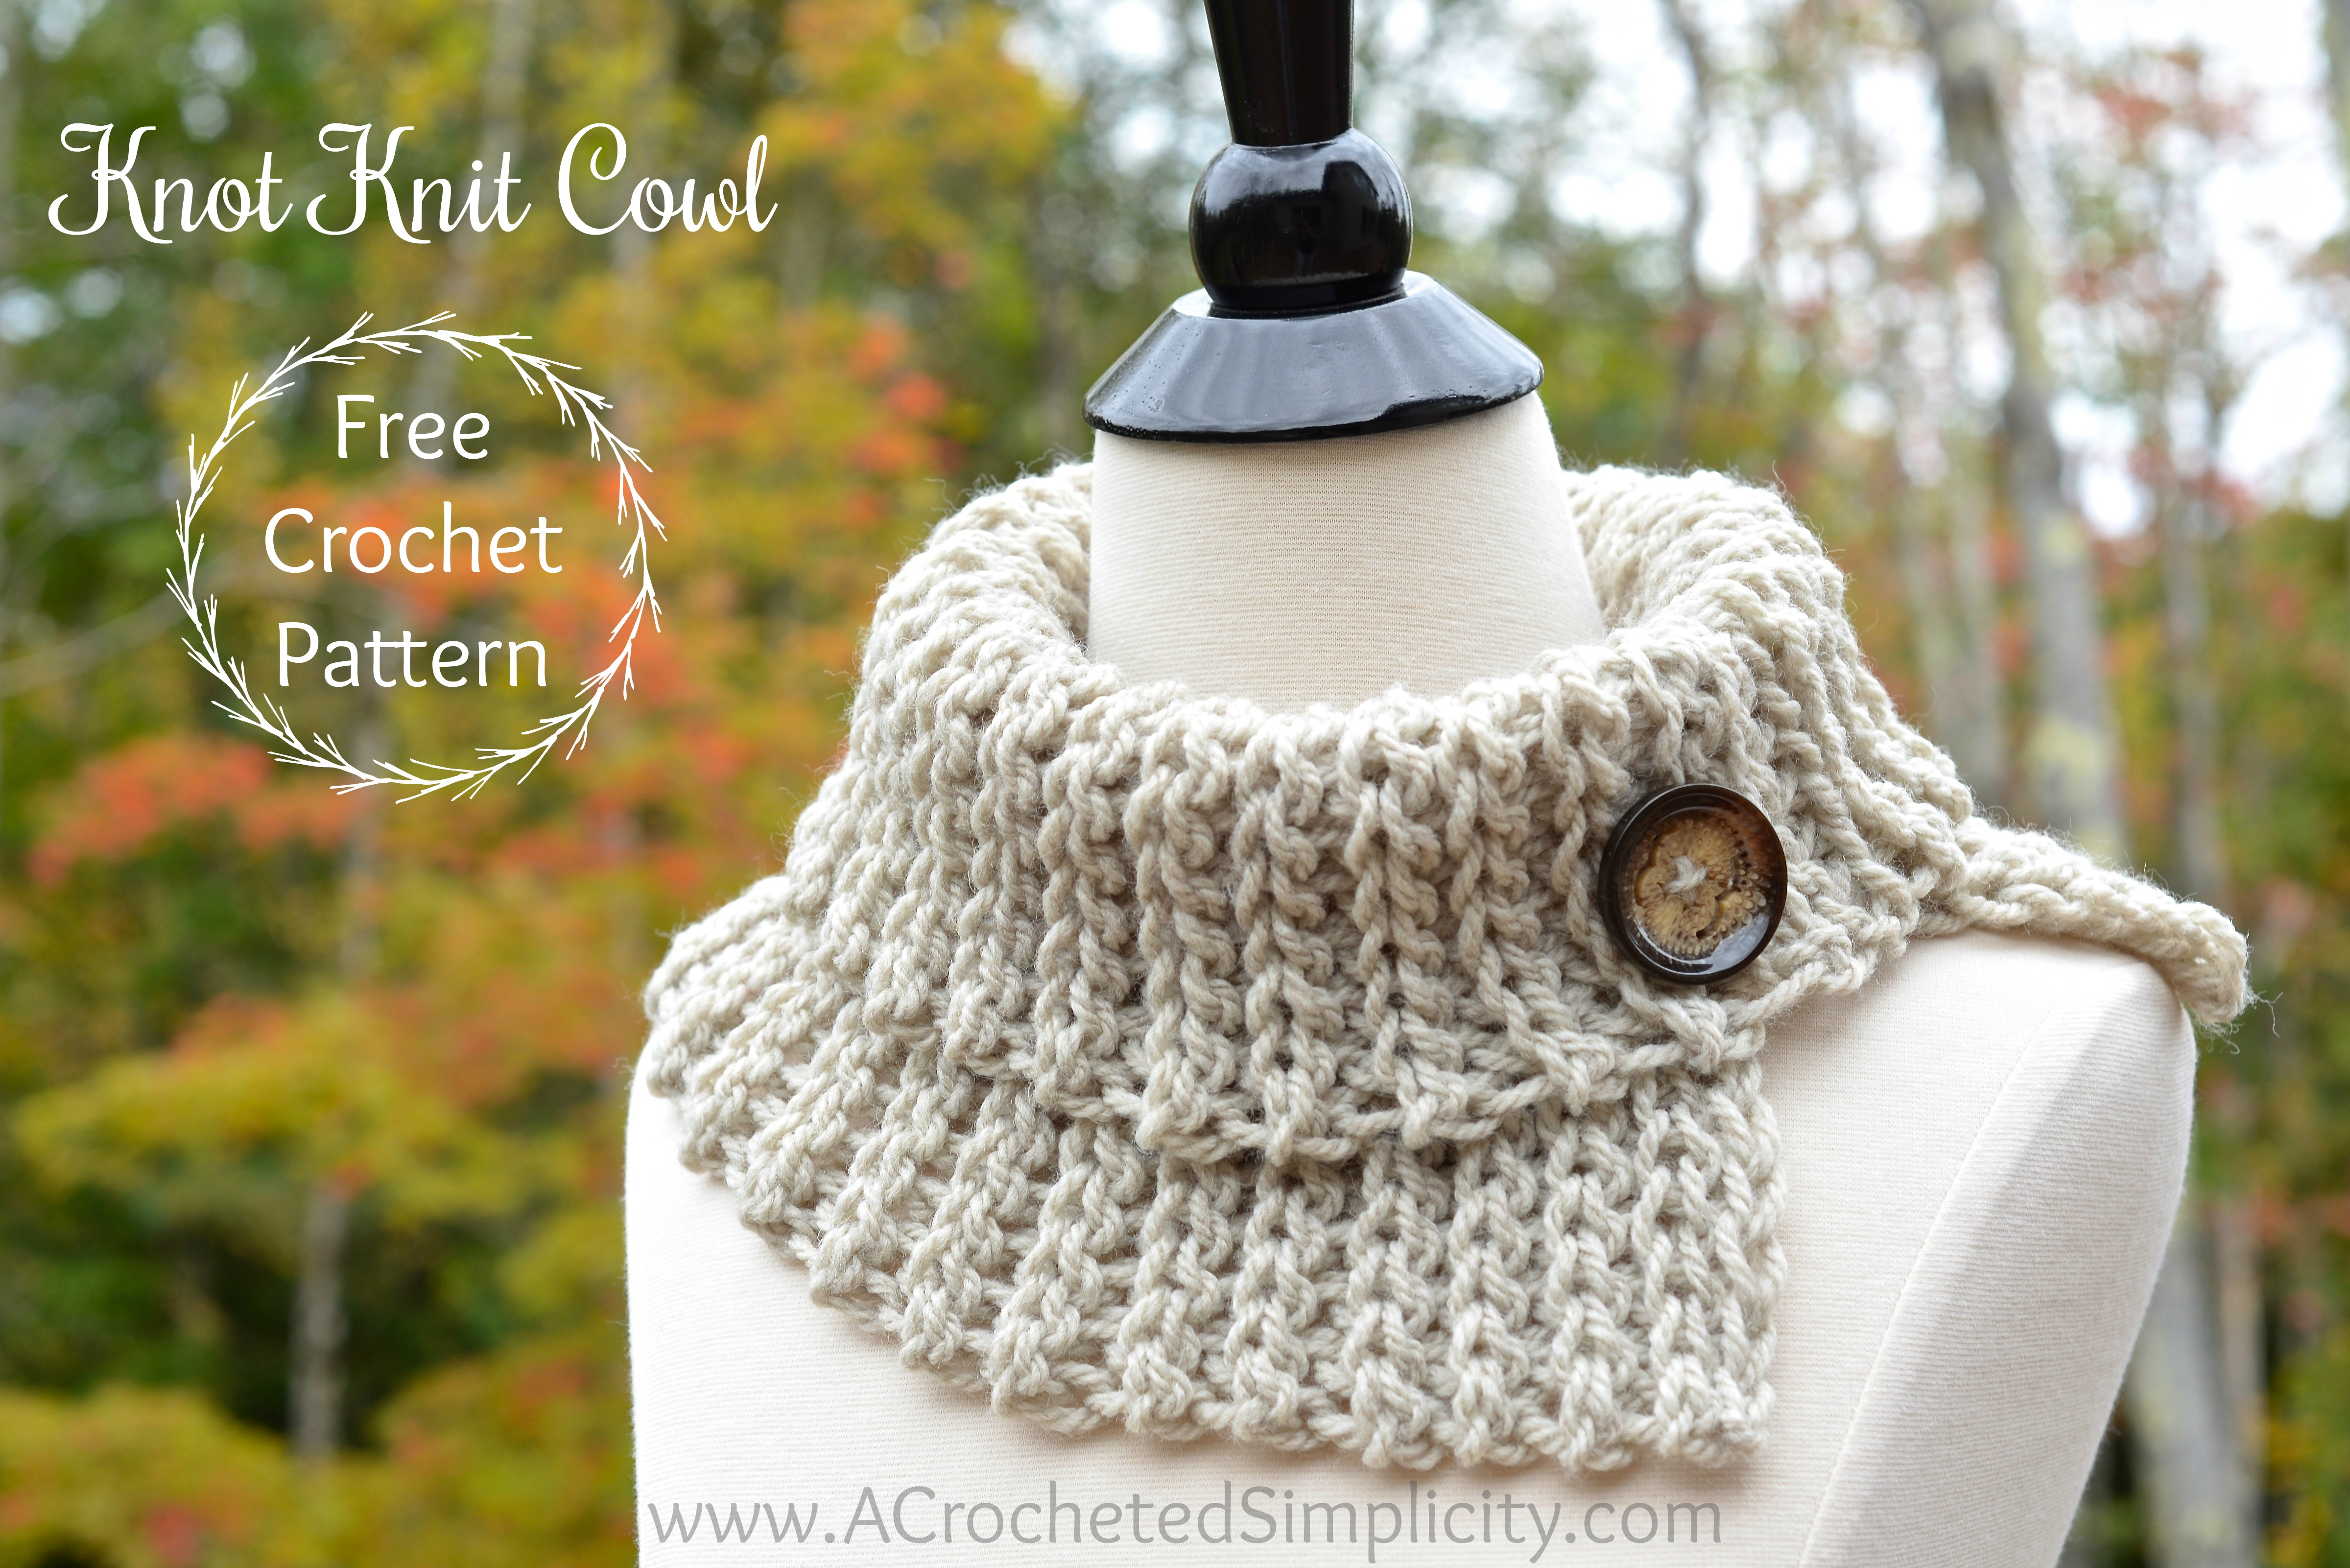 Free Crochet Pattern Knot Knit Cowl A Crocheted Simplicity